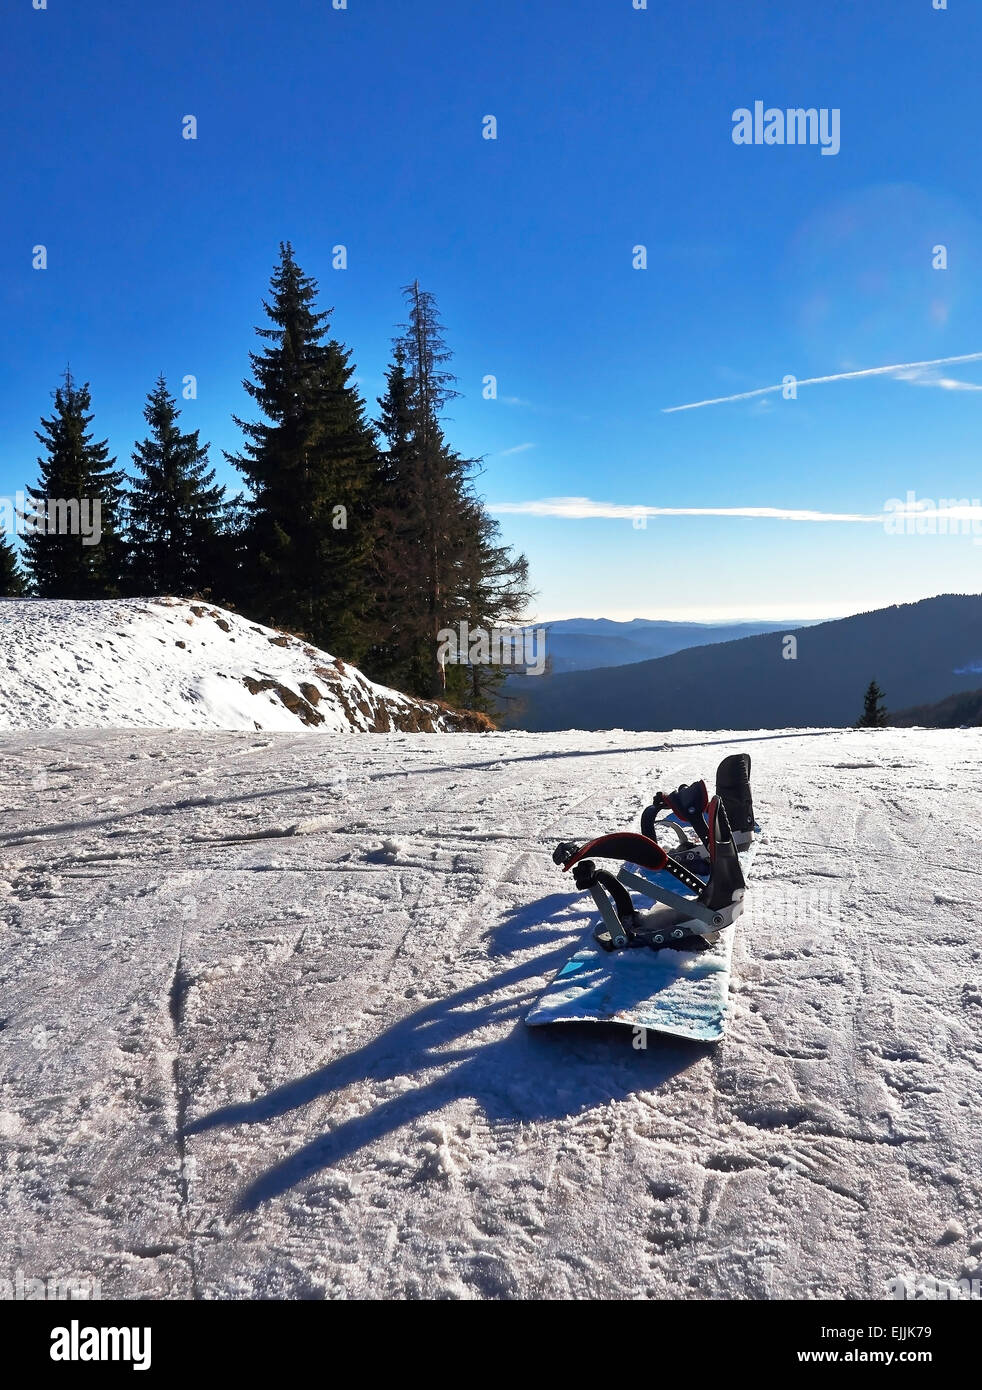 Winter sports. Snowboard on snow ski slope. - Stock Image